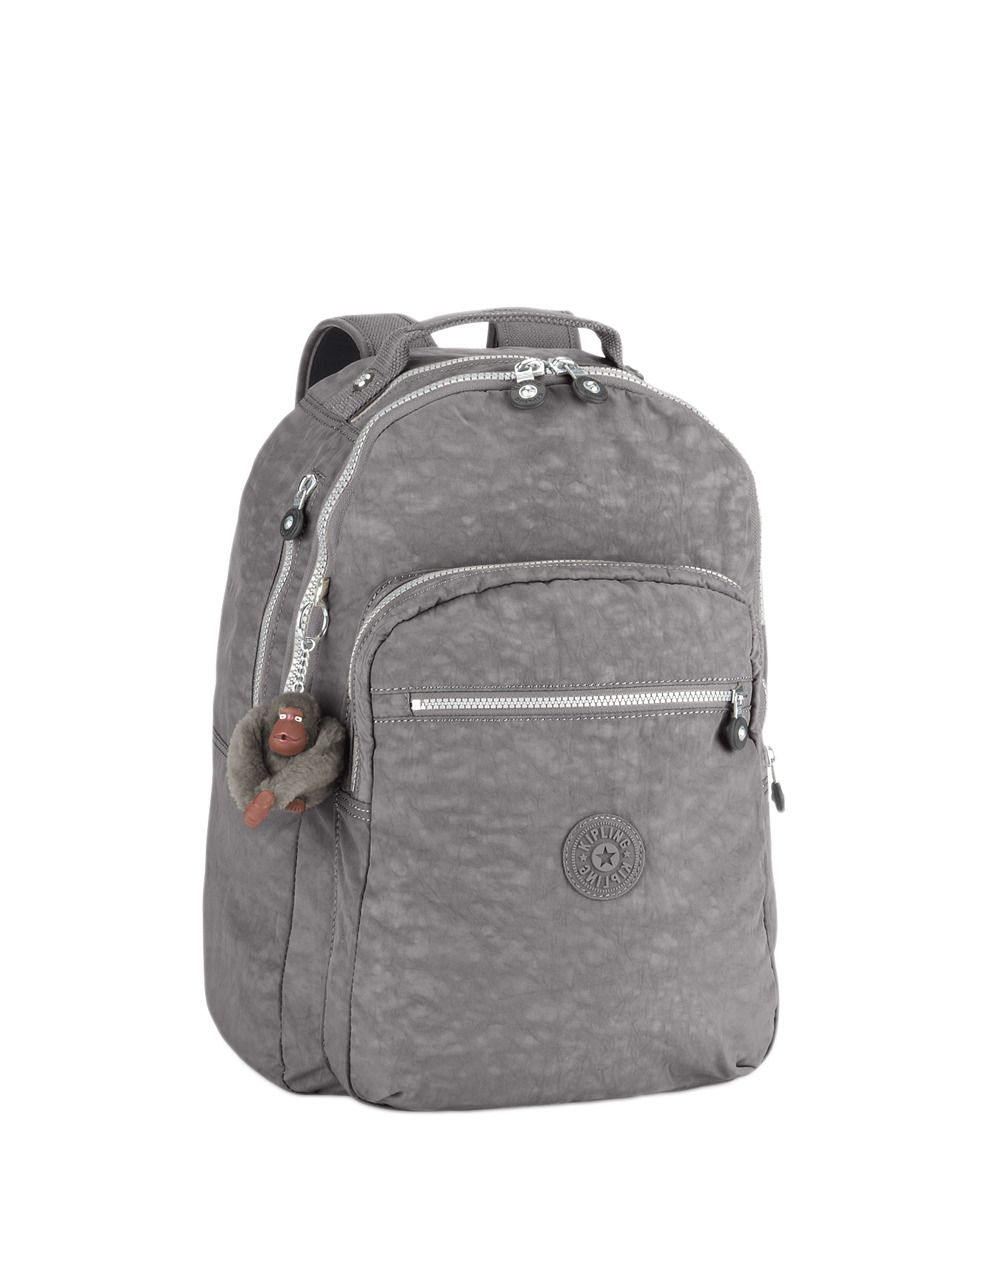 Pin en Backpacks